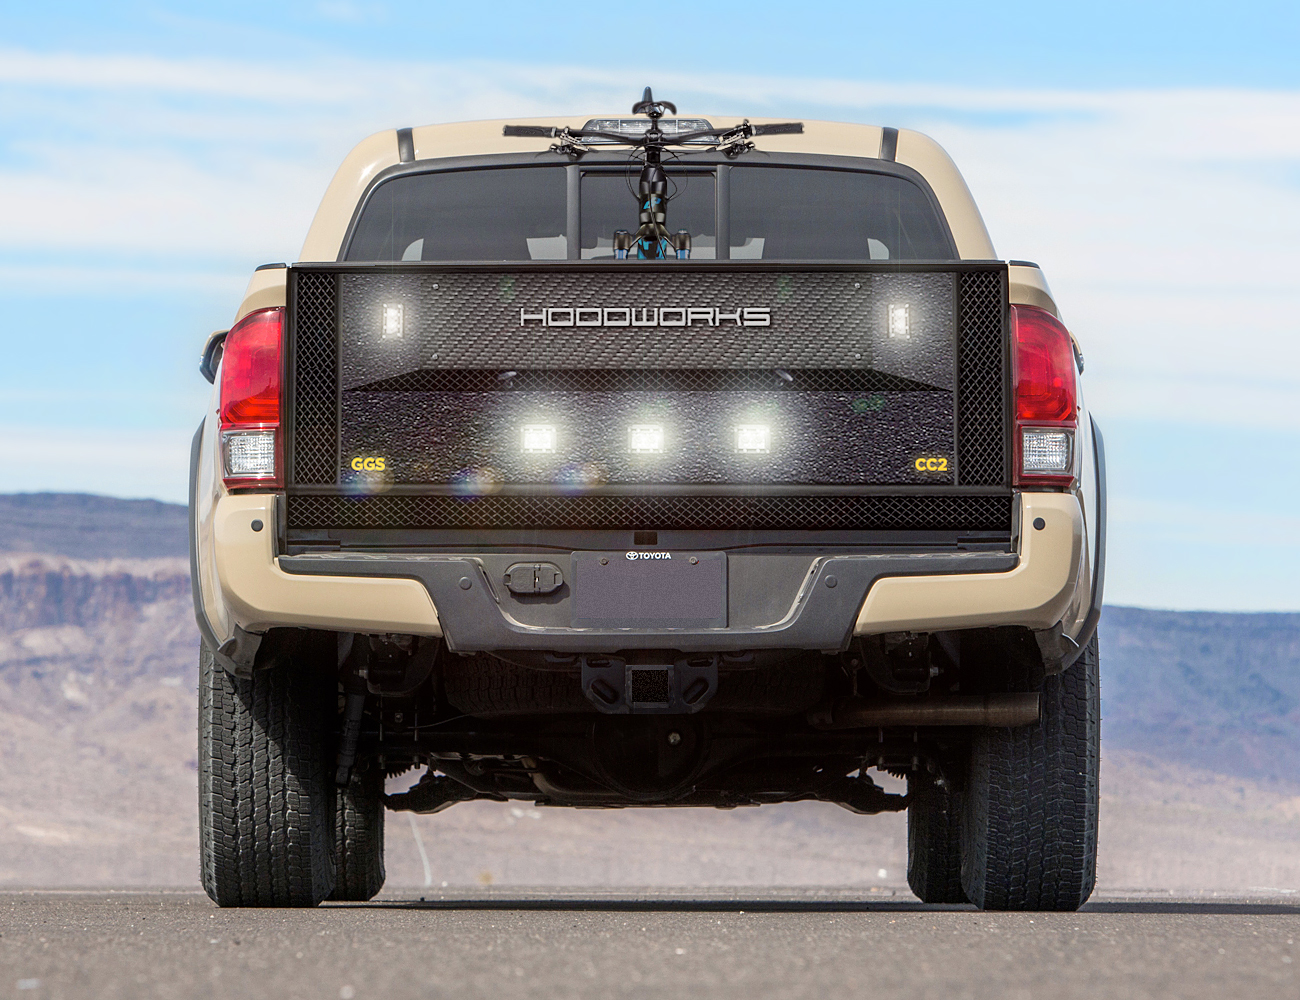 Hoodworks Launches Geargate For Toyota Tacoma Hoodworks